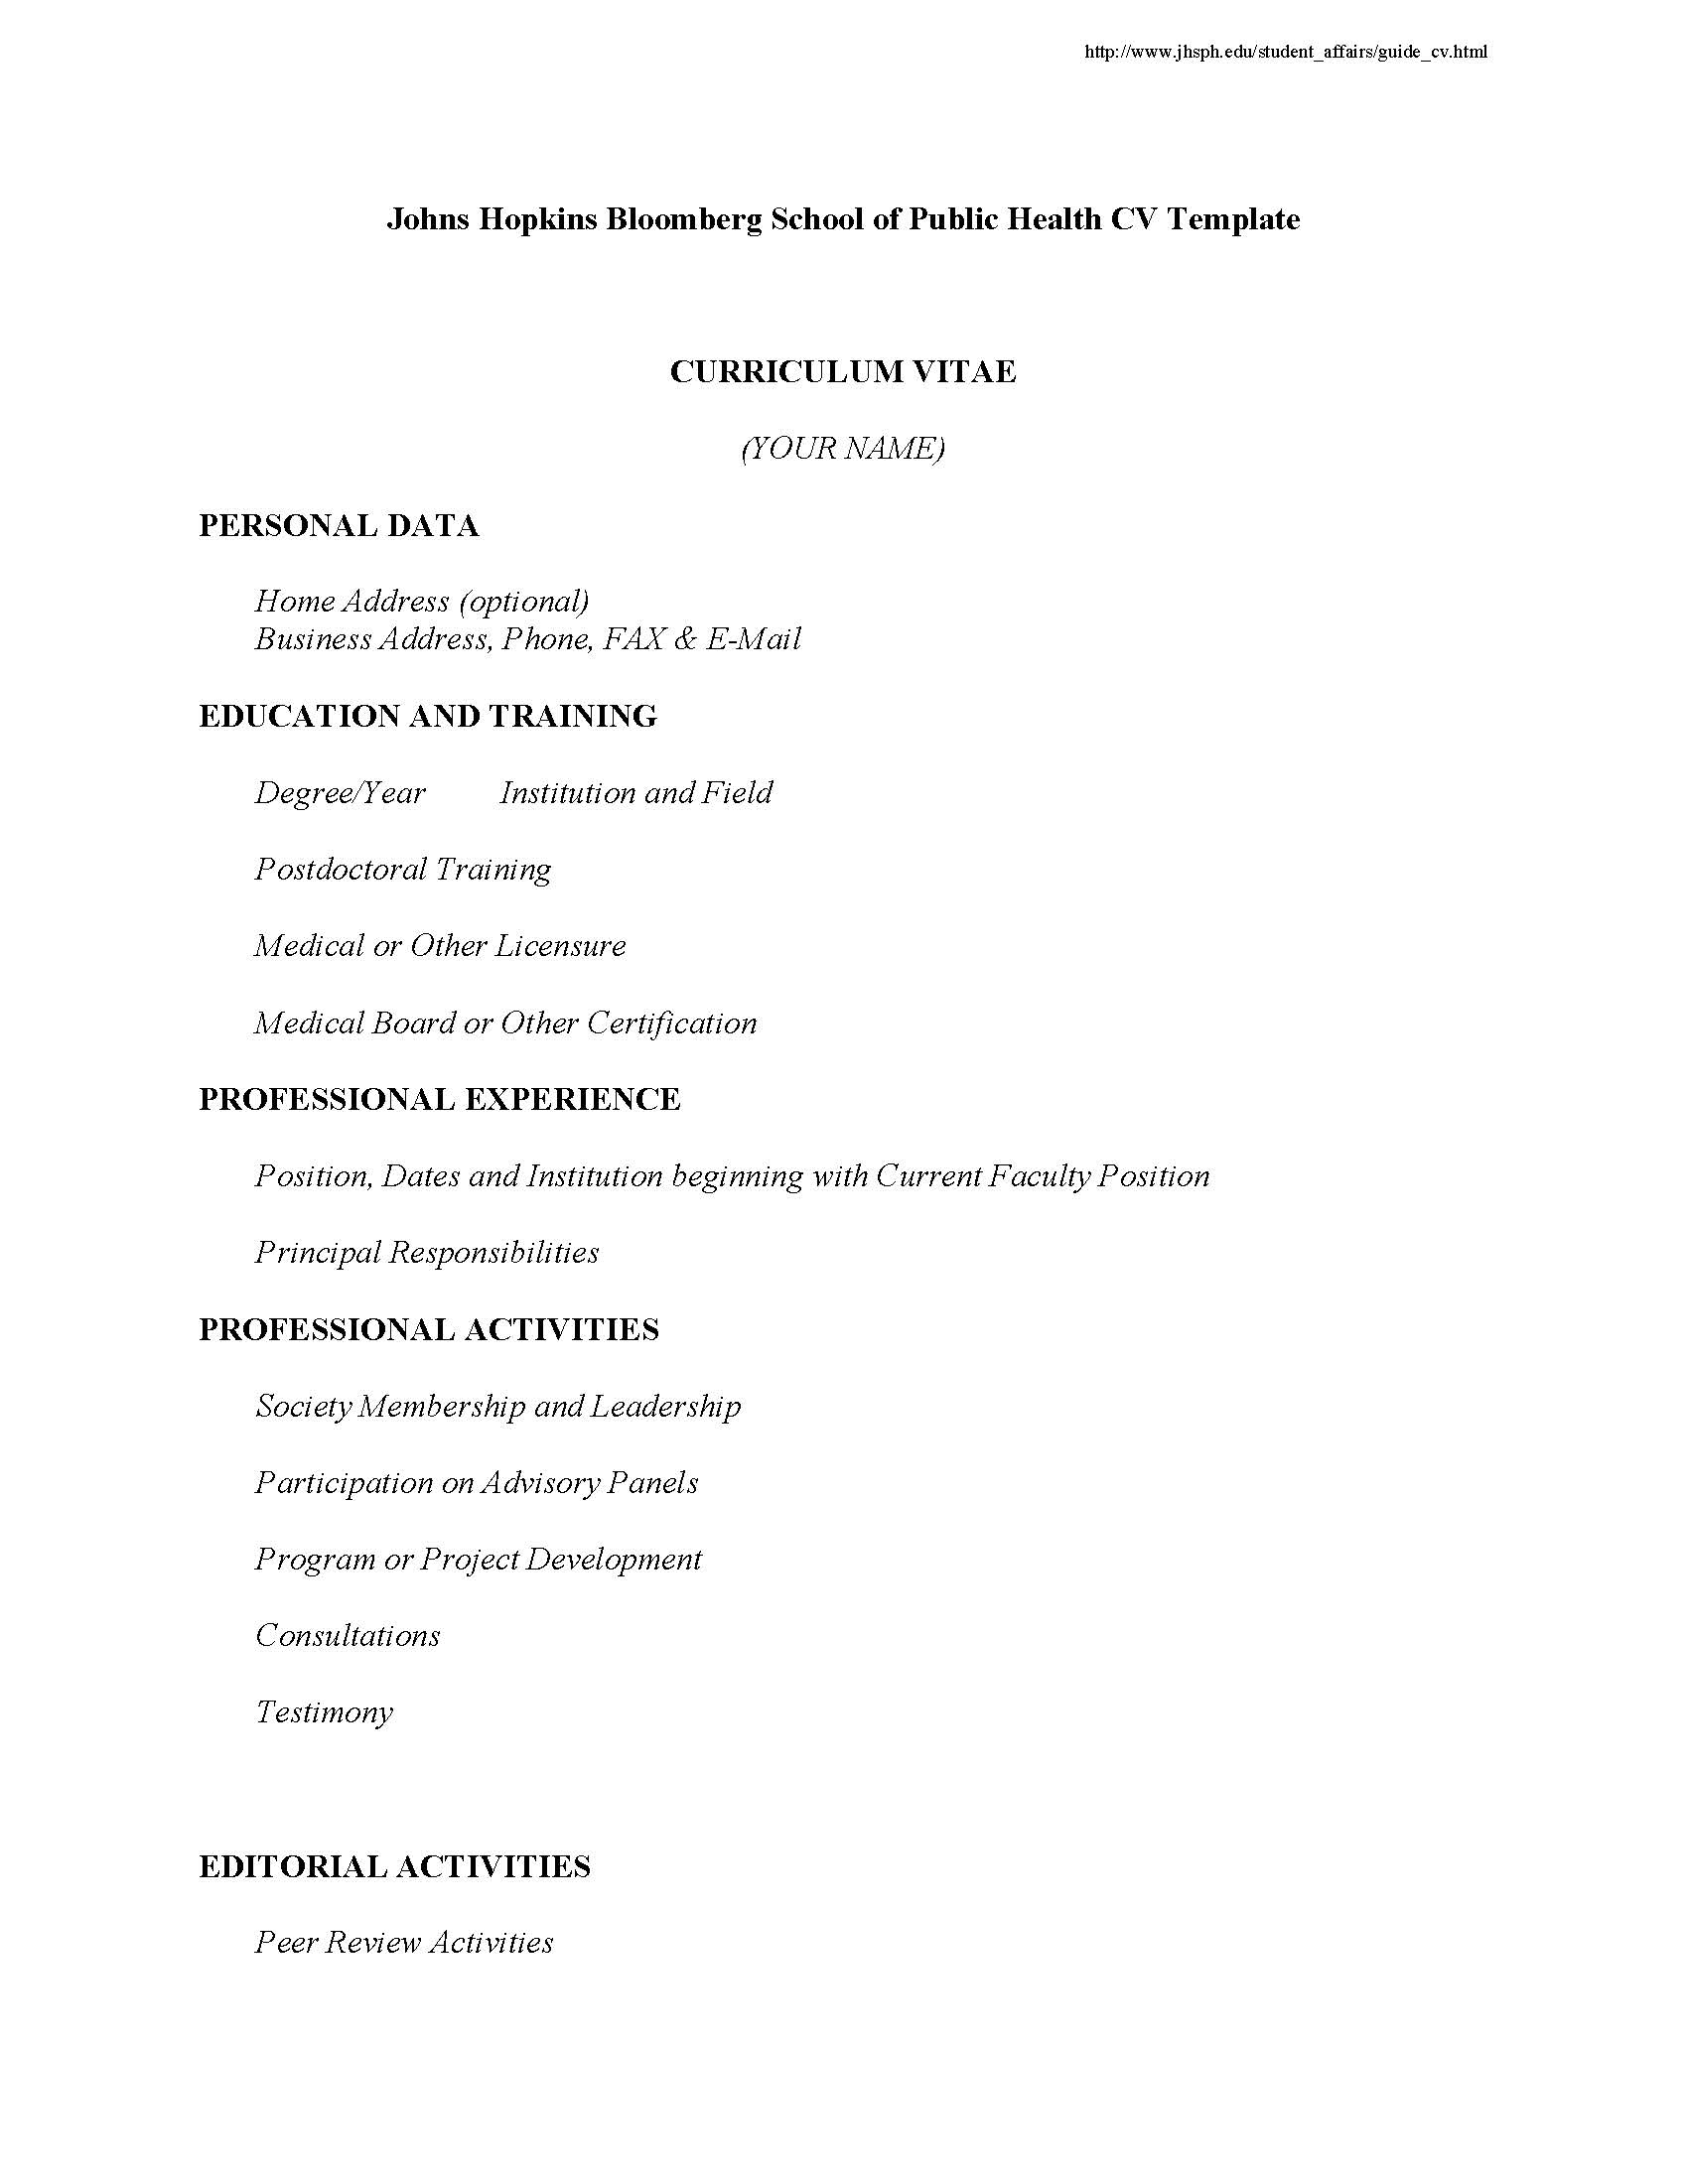 JHSPH CV Template  Public Health Resume Sample